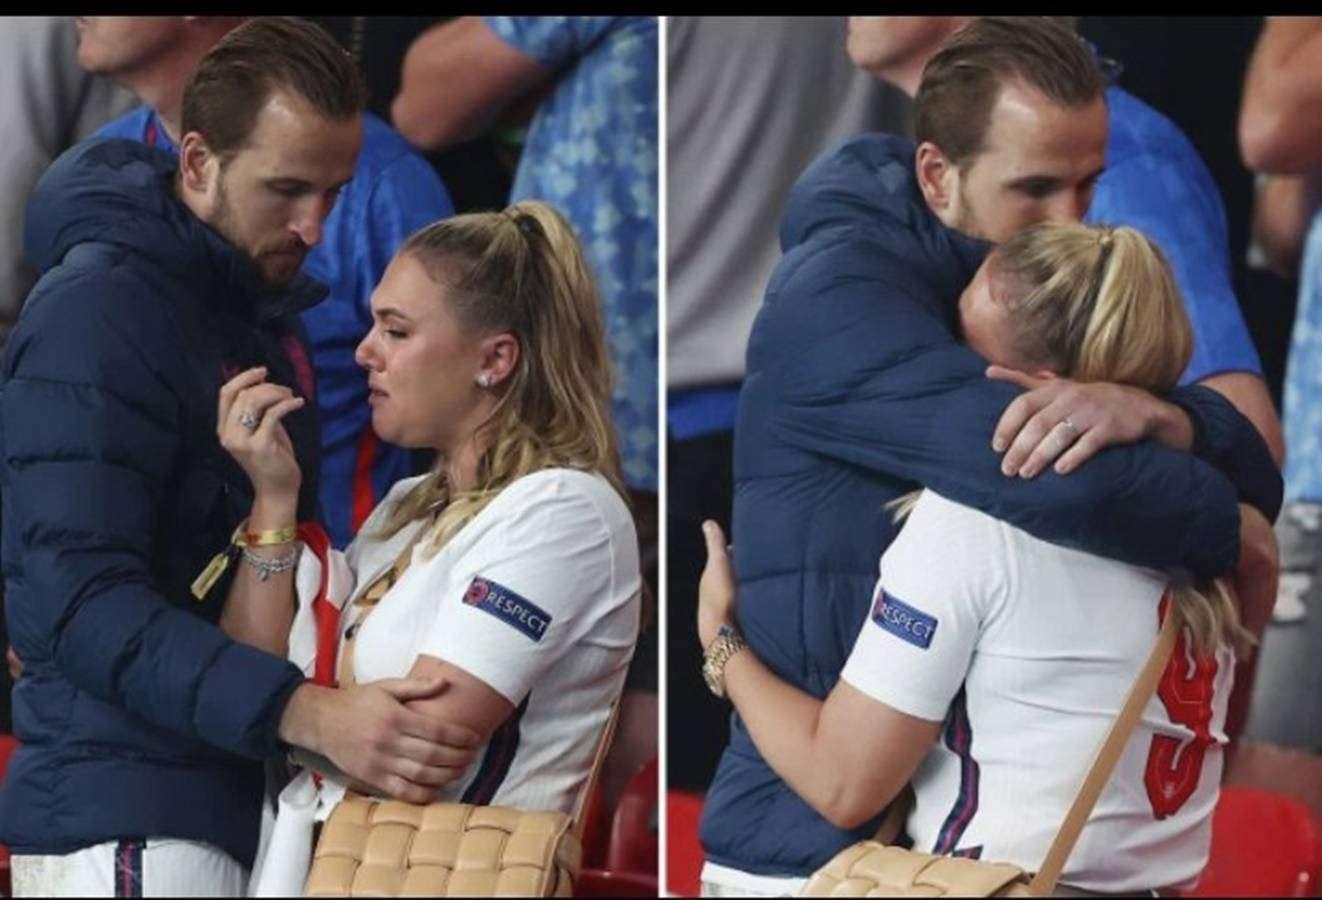 Harry Kane's wife Kate sheds tears after losing Euro 2020 to Italy